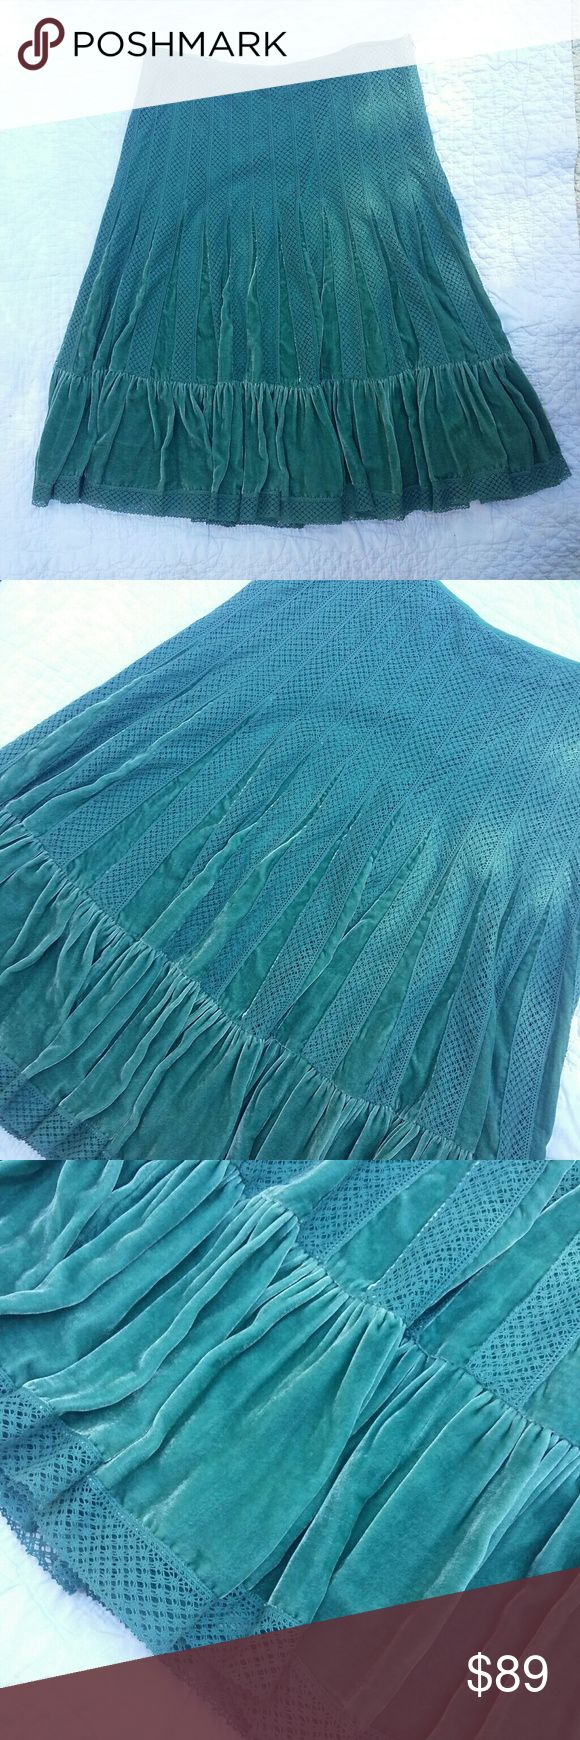 Free People Velvet Lace Pleated Skirt Teal This gorgeous skirt is in excellent condition with no signs of wear. No stains, holes, snags or other flaws. Beautiful teal velevet and lace midi lenth with a side hidden zipper. This is a hard to find color and more than beautiful!! Free People Skirts Midi